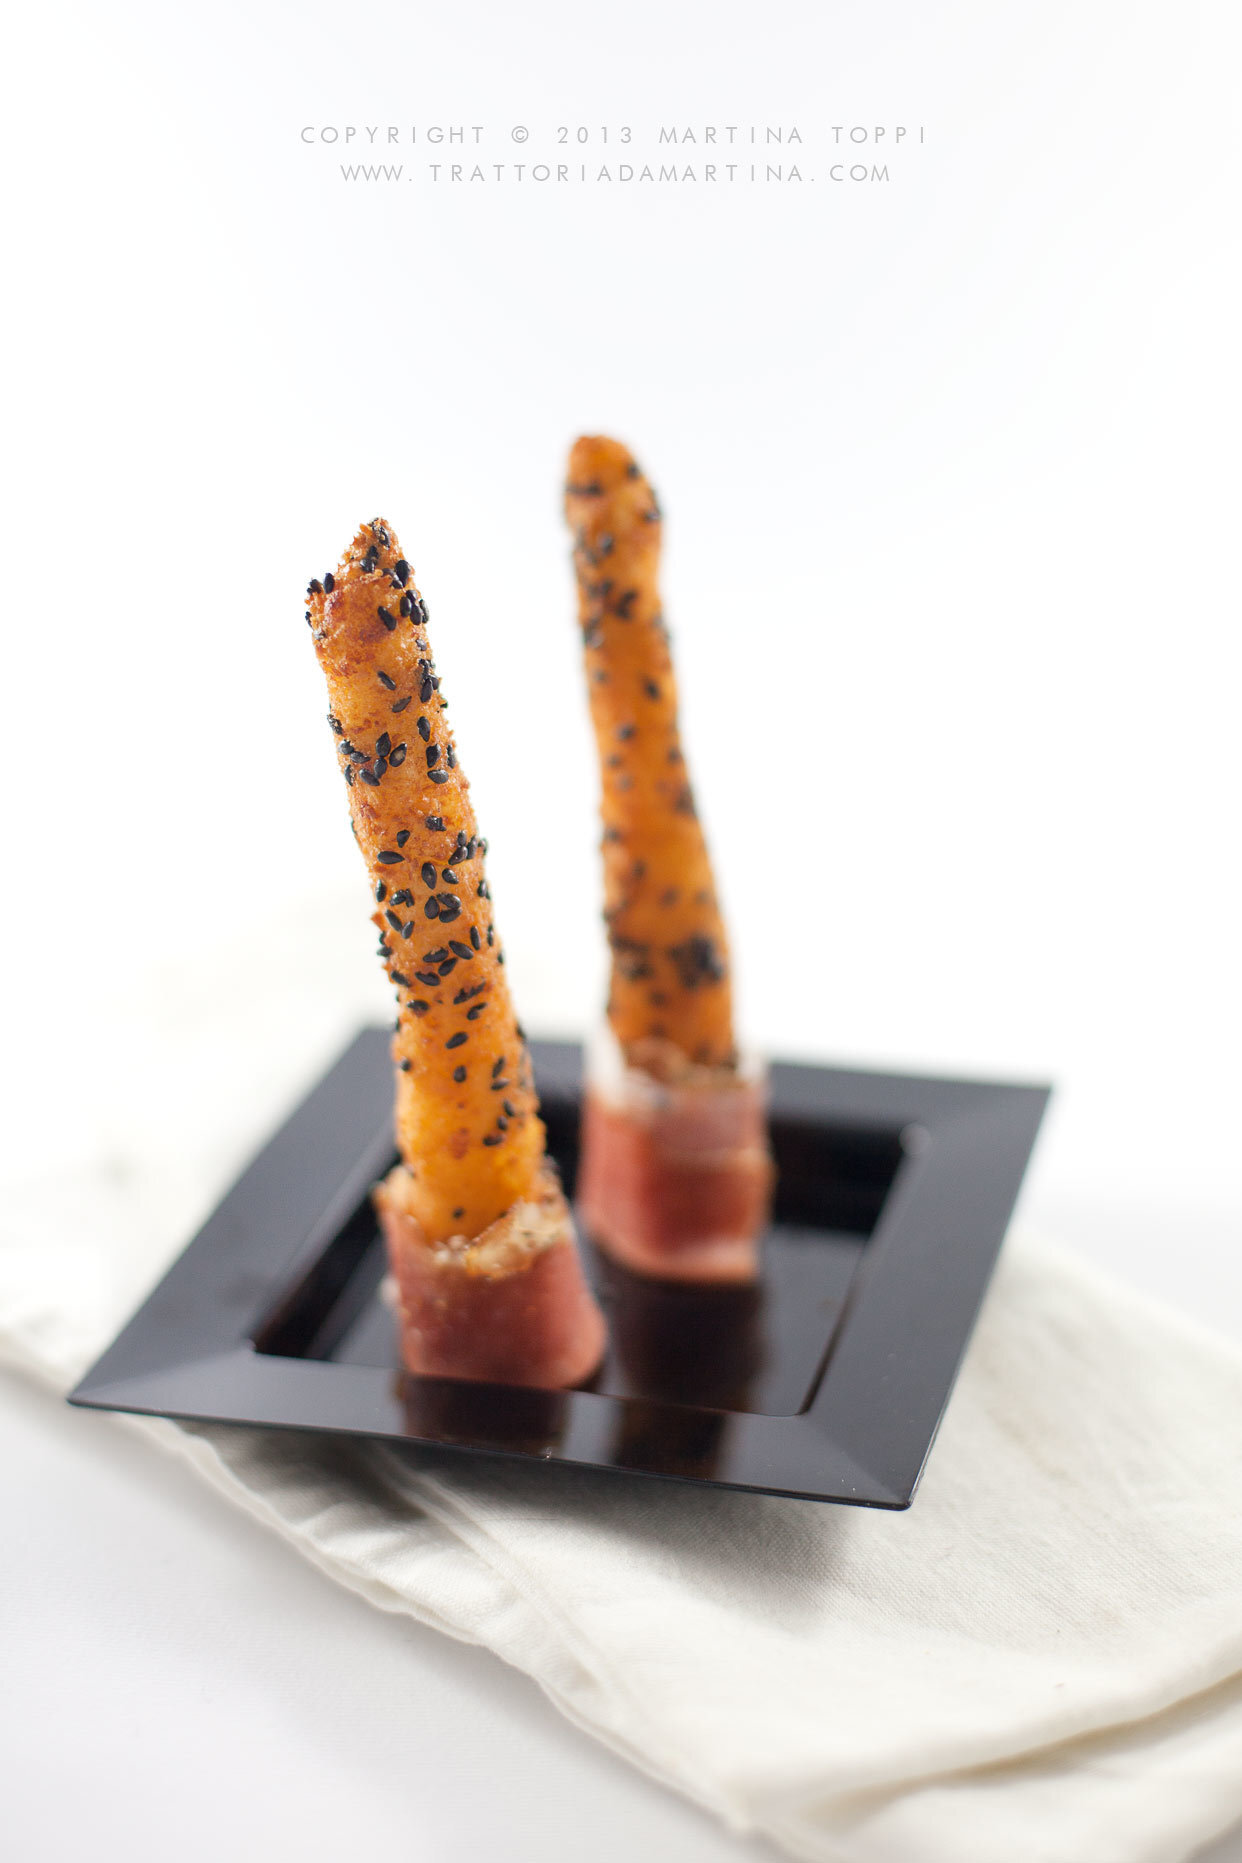 Idea finger food: grissini di patate al sesamo nero con speck arrotolato